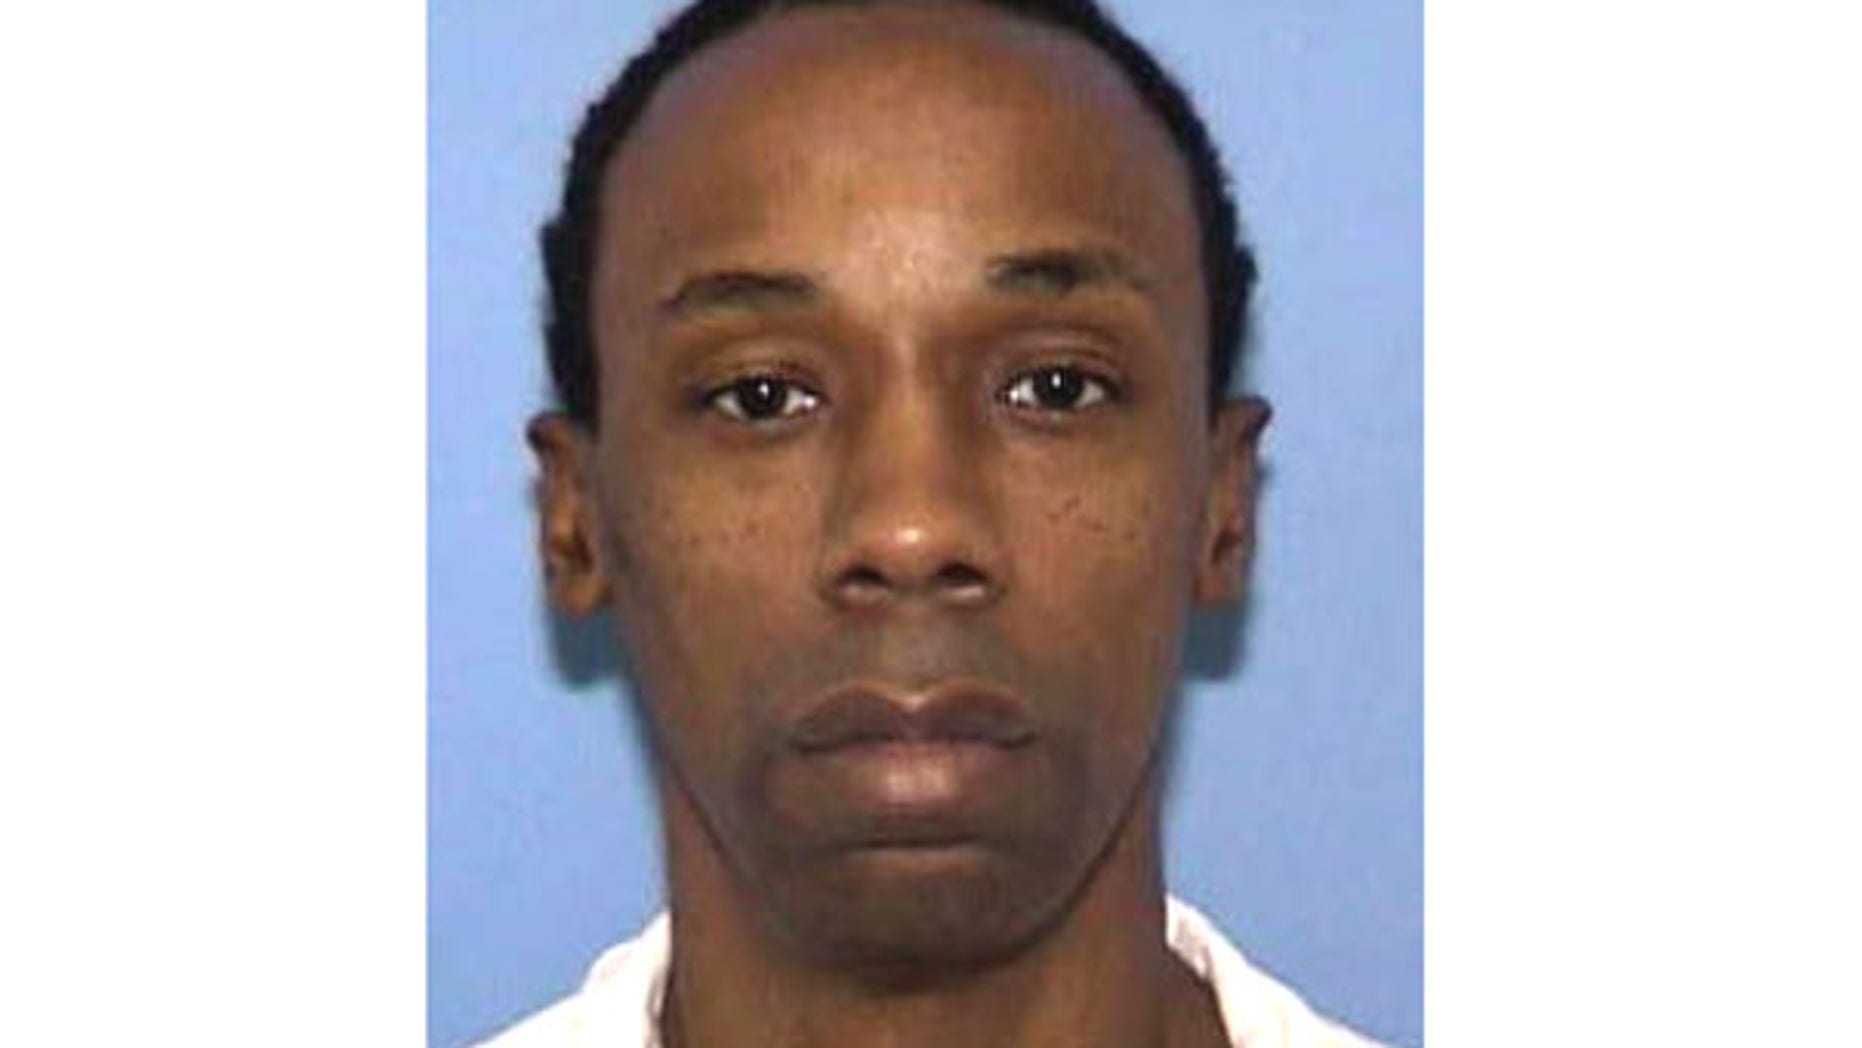 Michael Anthony Green, 44, was released on bond after spending 27 years in prison for a rape he did not commit.